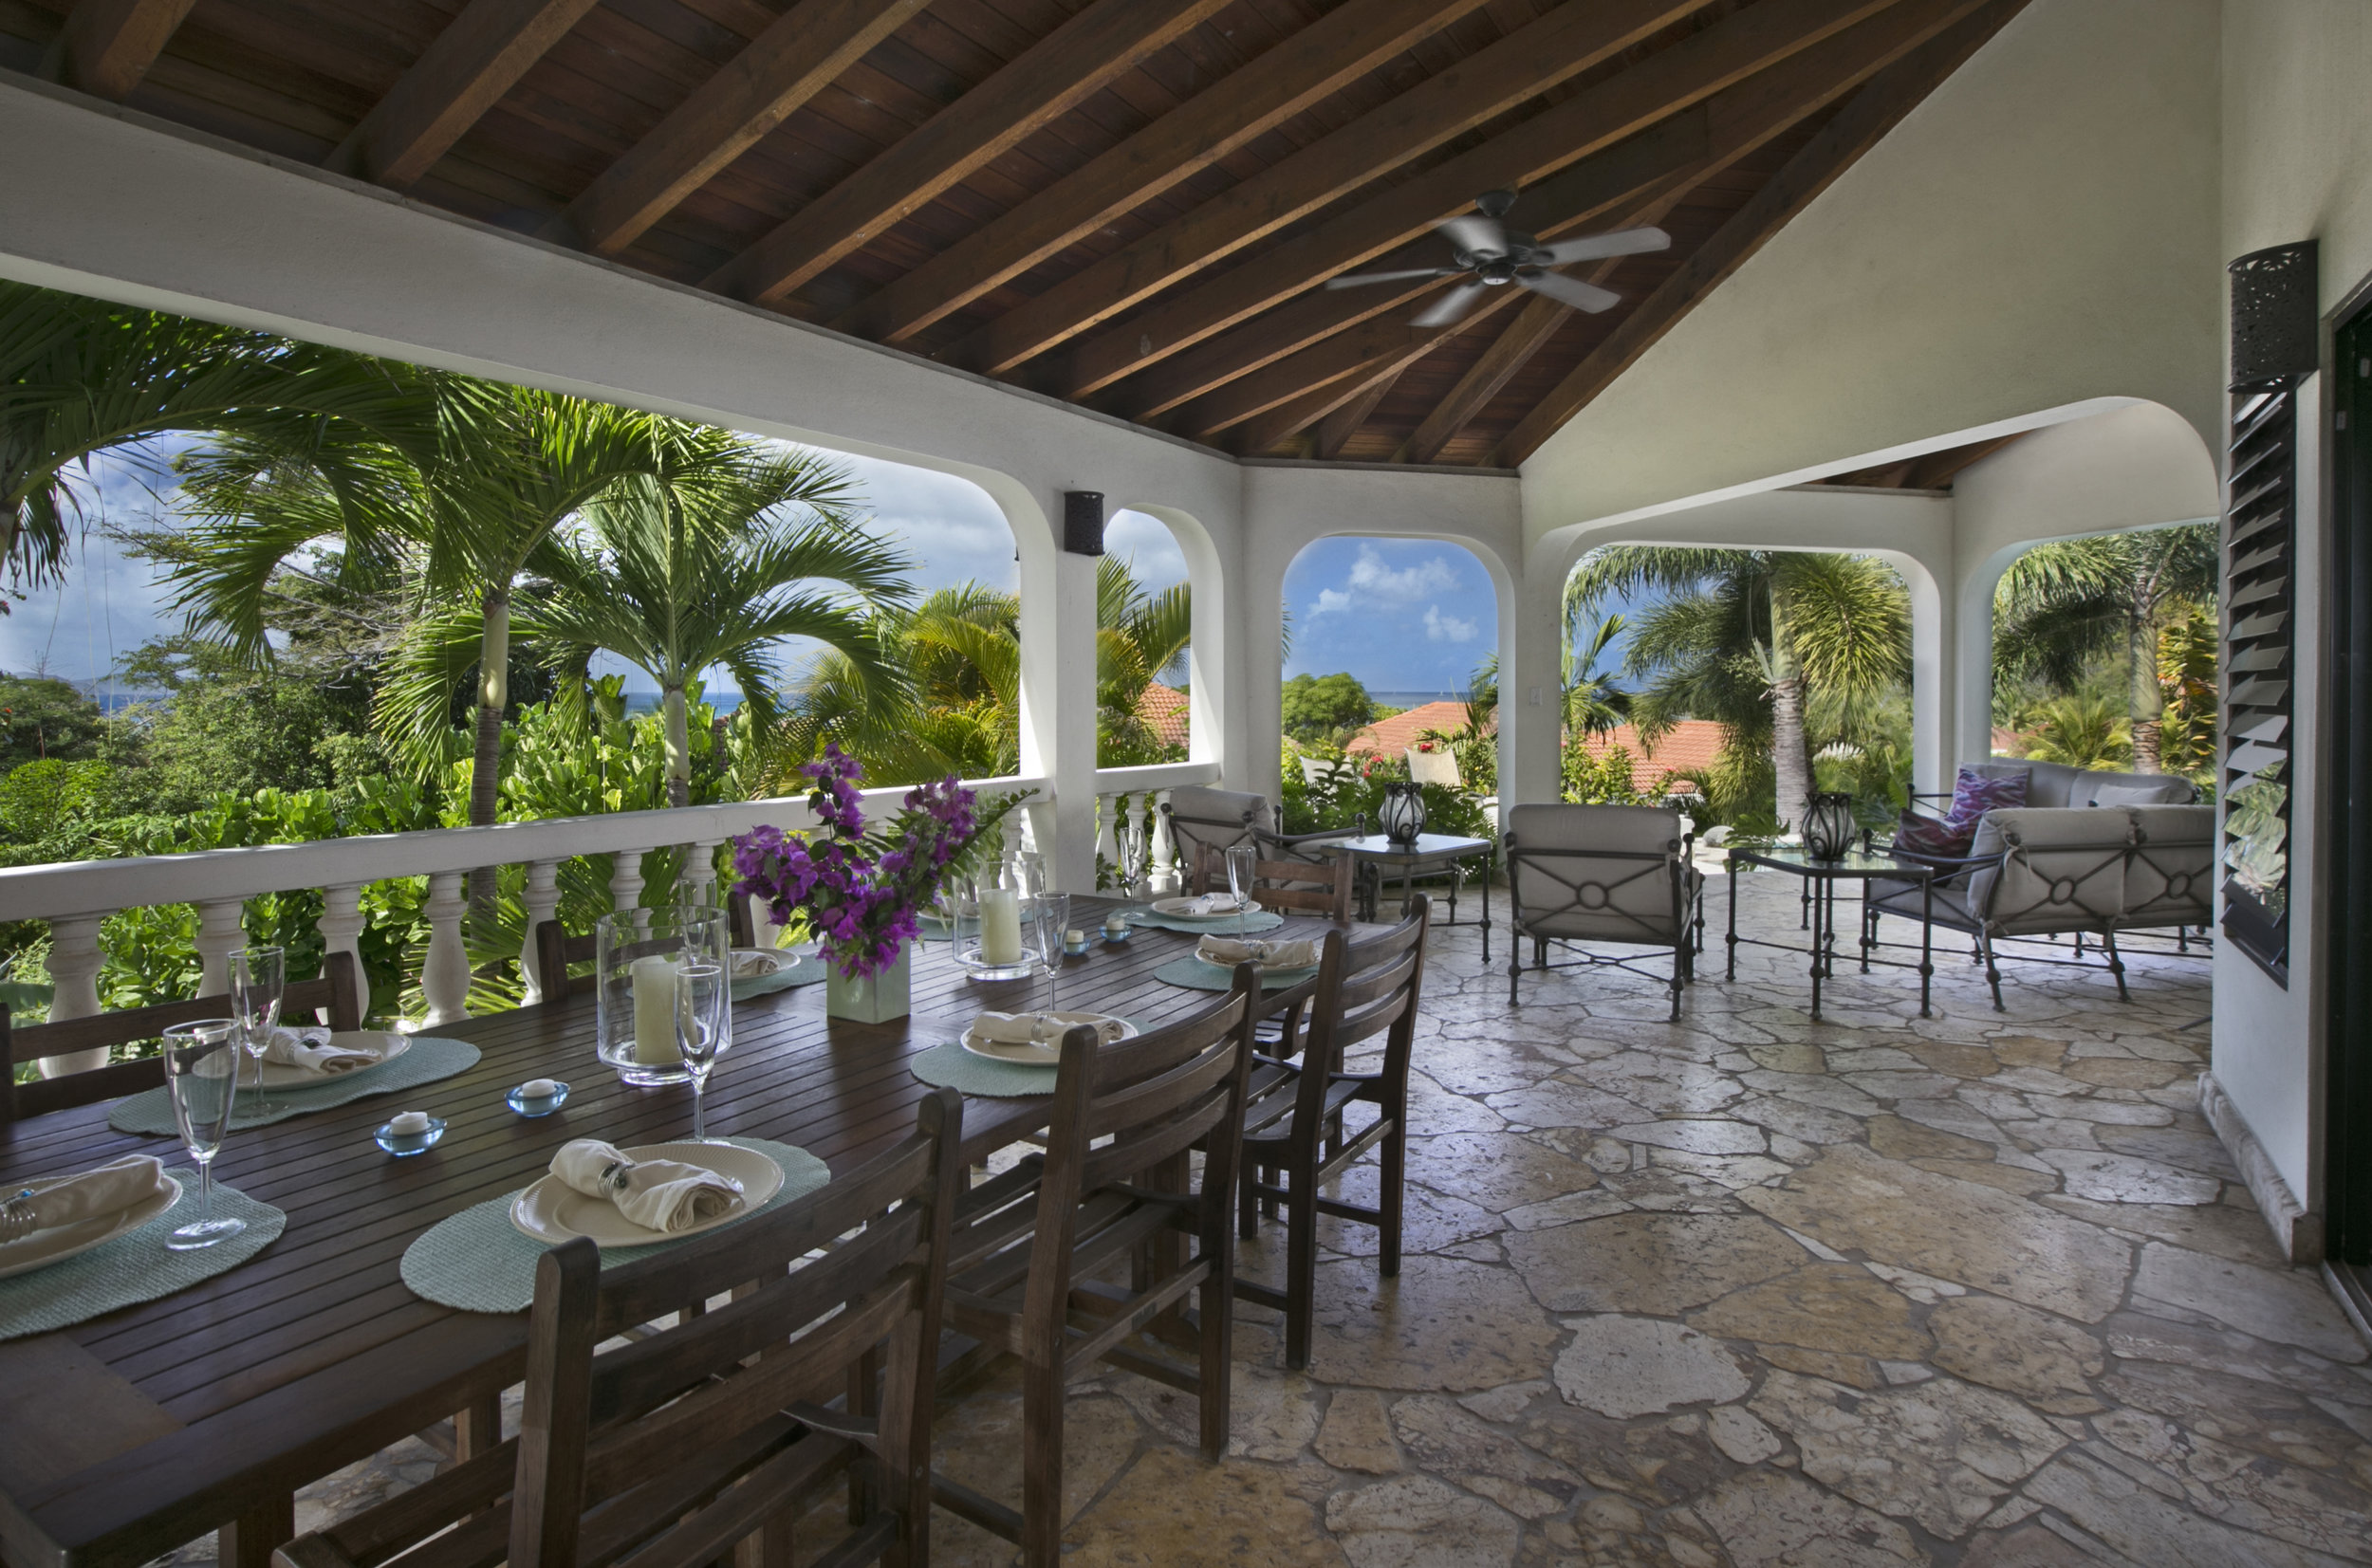 Enjoy outdoor alfresco dining prepared by one of the islands amazing chef!